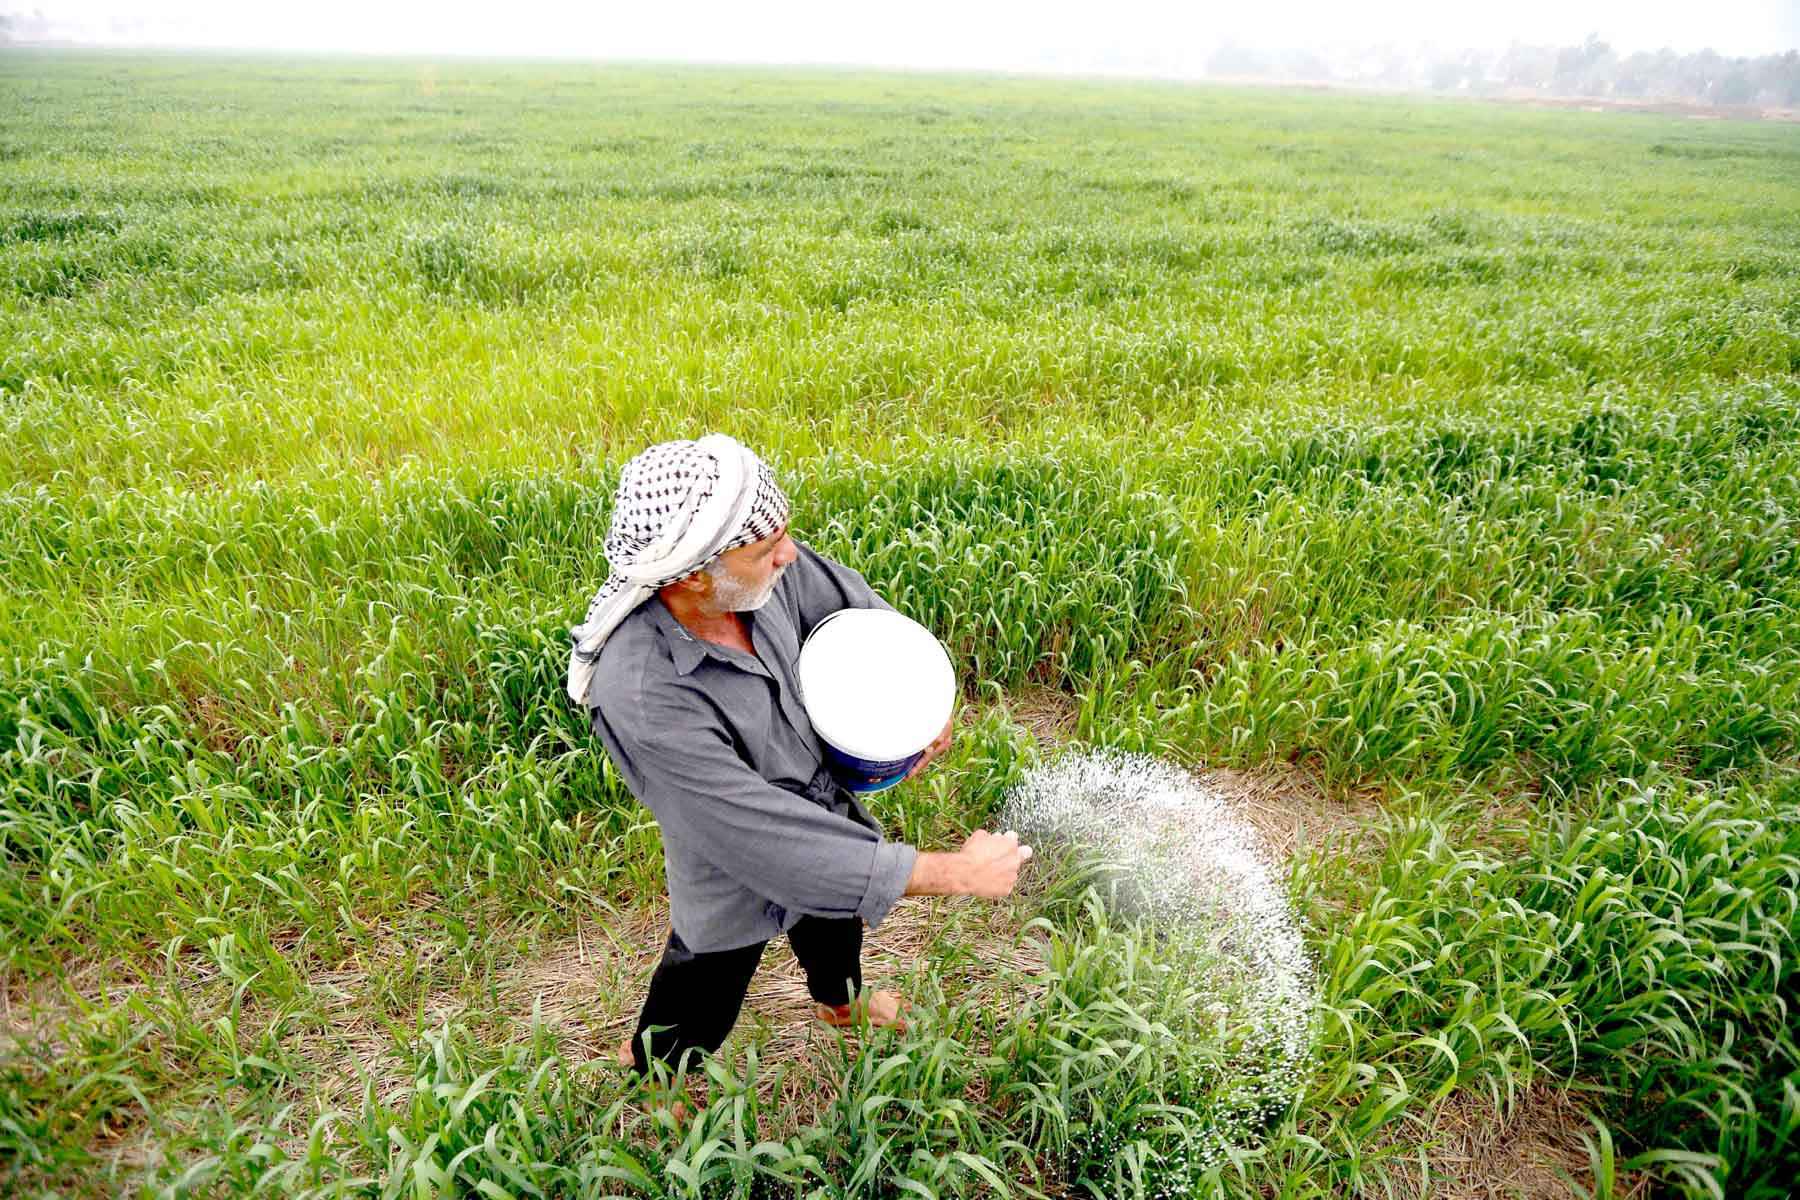 Vulnerable sector. An Iraqi farmer plants Jasmin rice in the Mishkhab region in central Iraq. (AFP)